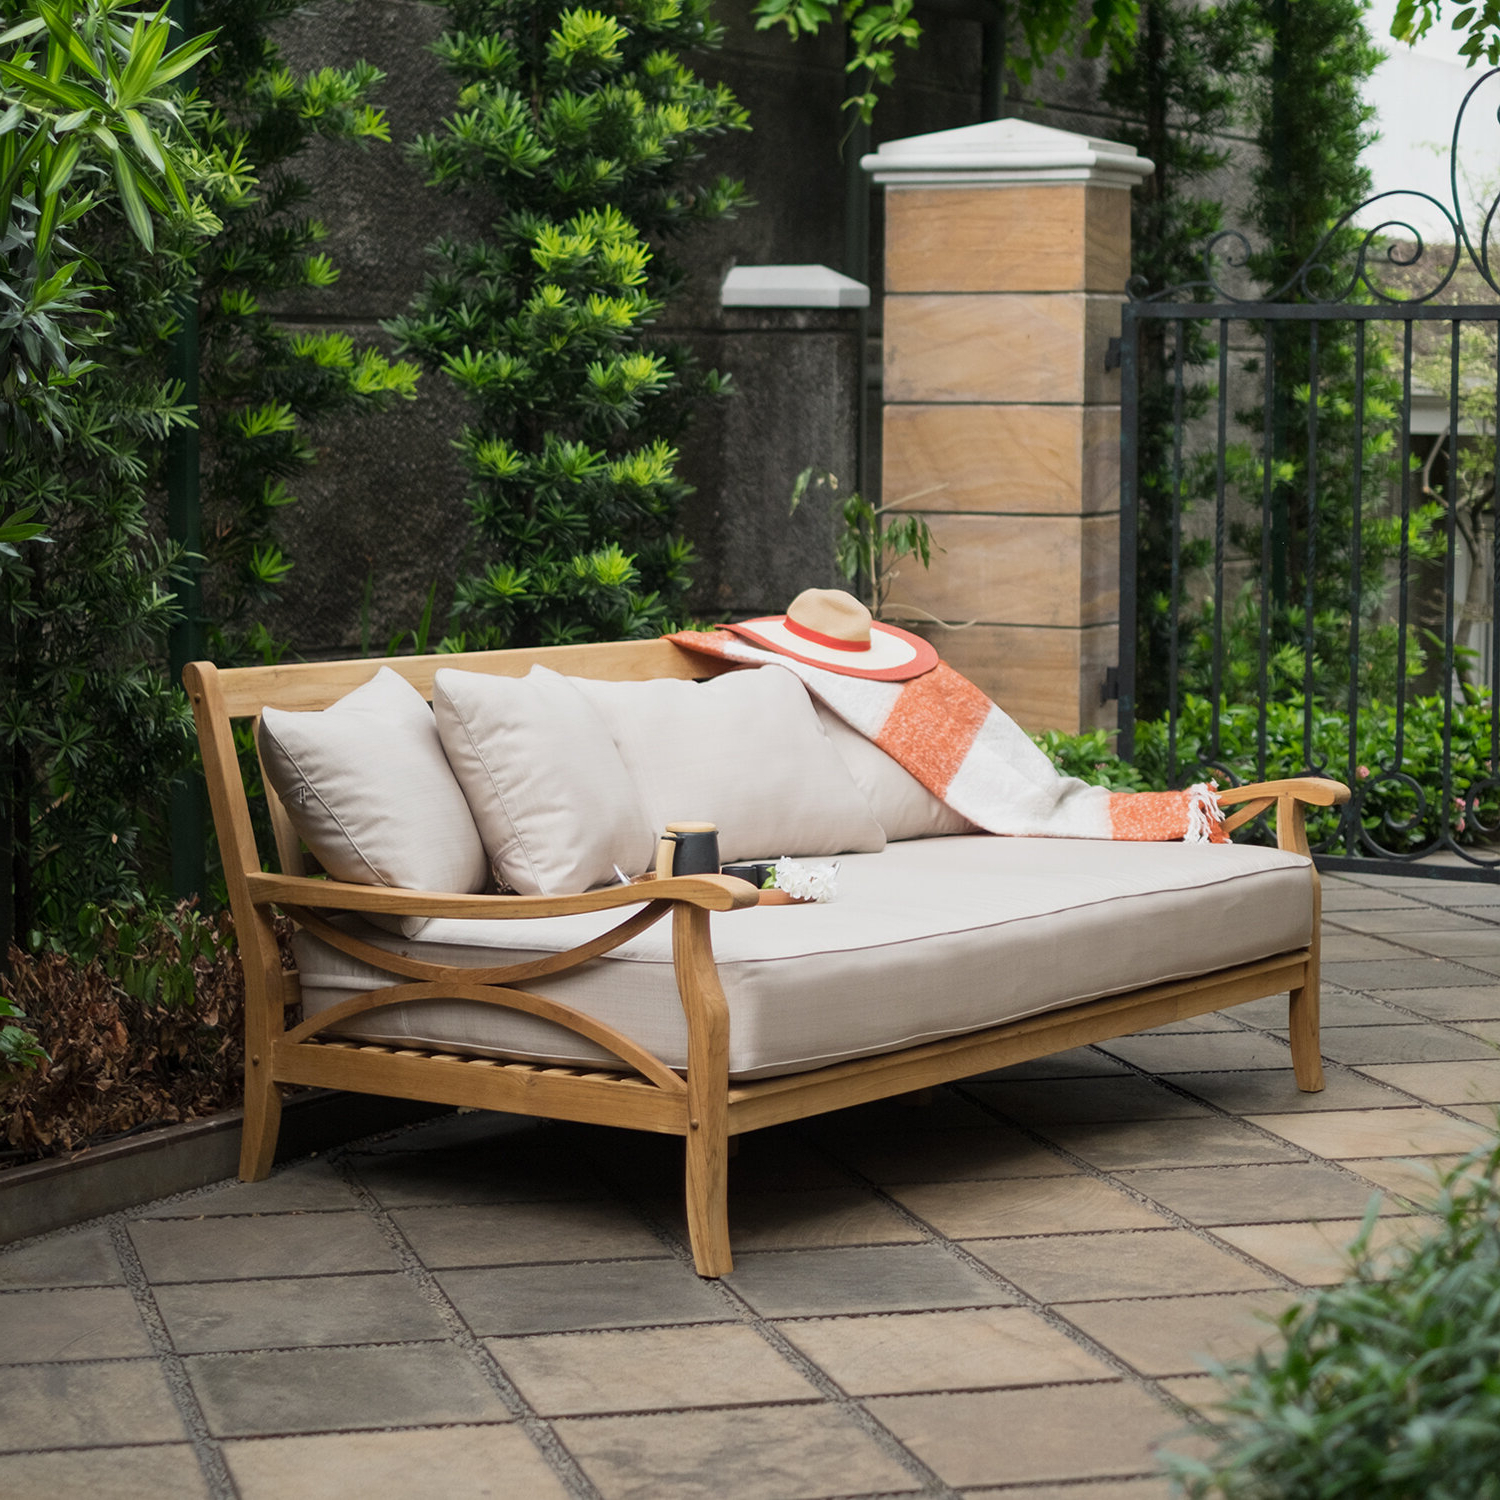 Brunswick Teak Patio Daybed With Cushions For Recent Clary Teak Lounge Patio Daybeds With Cushion (View 2 of 20)